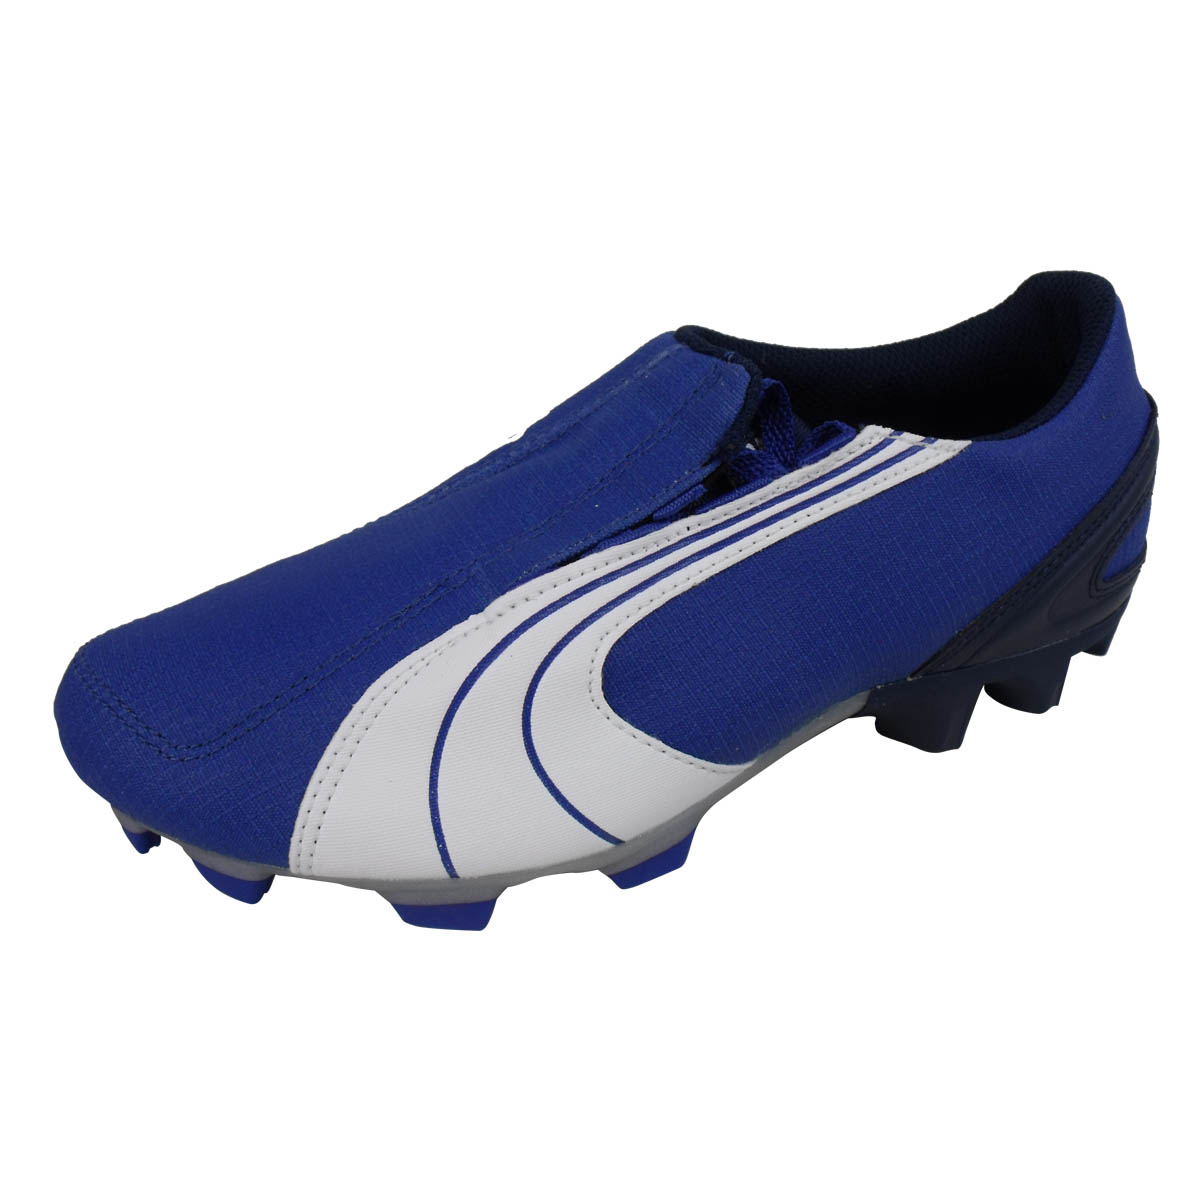 988e0e81872 Boys Puma FG Firm Ground Football Boots Junior Sizes Kids Soccer Boot Size  10-6